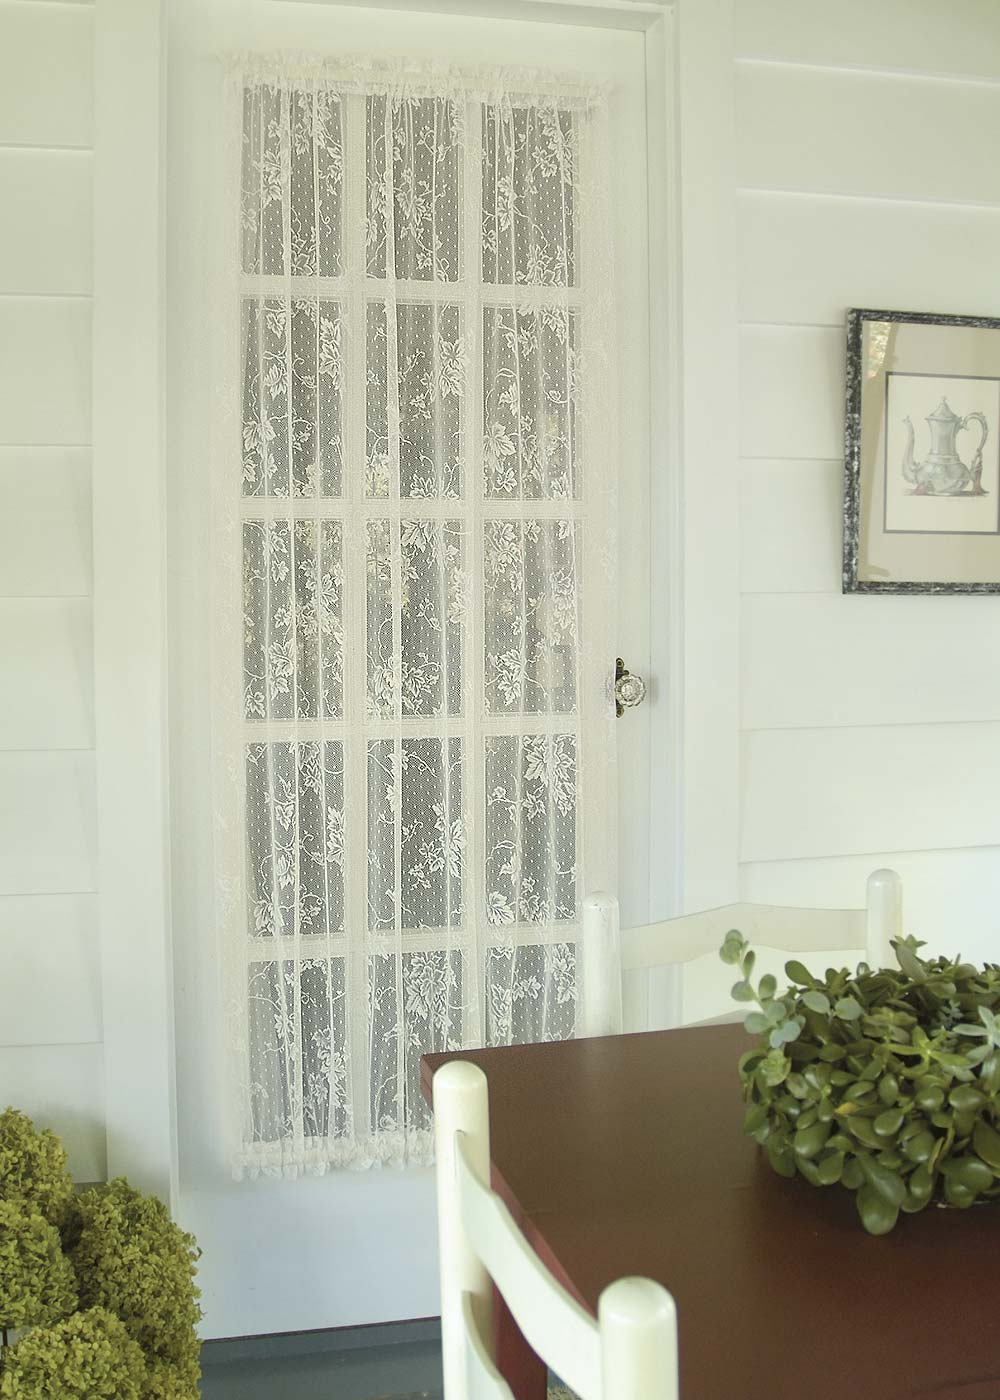 Curtain-Door Panel-English Ivy-Heritage Lace